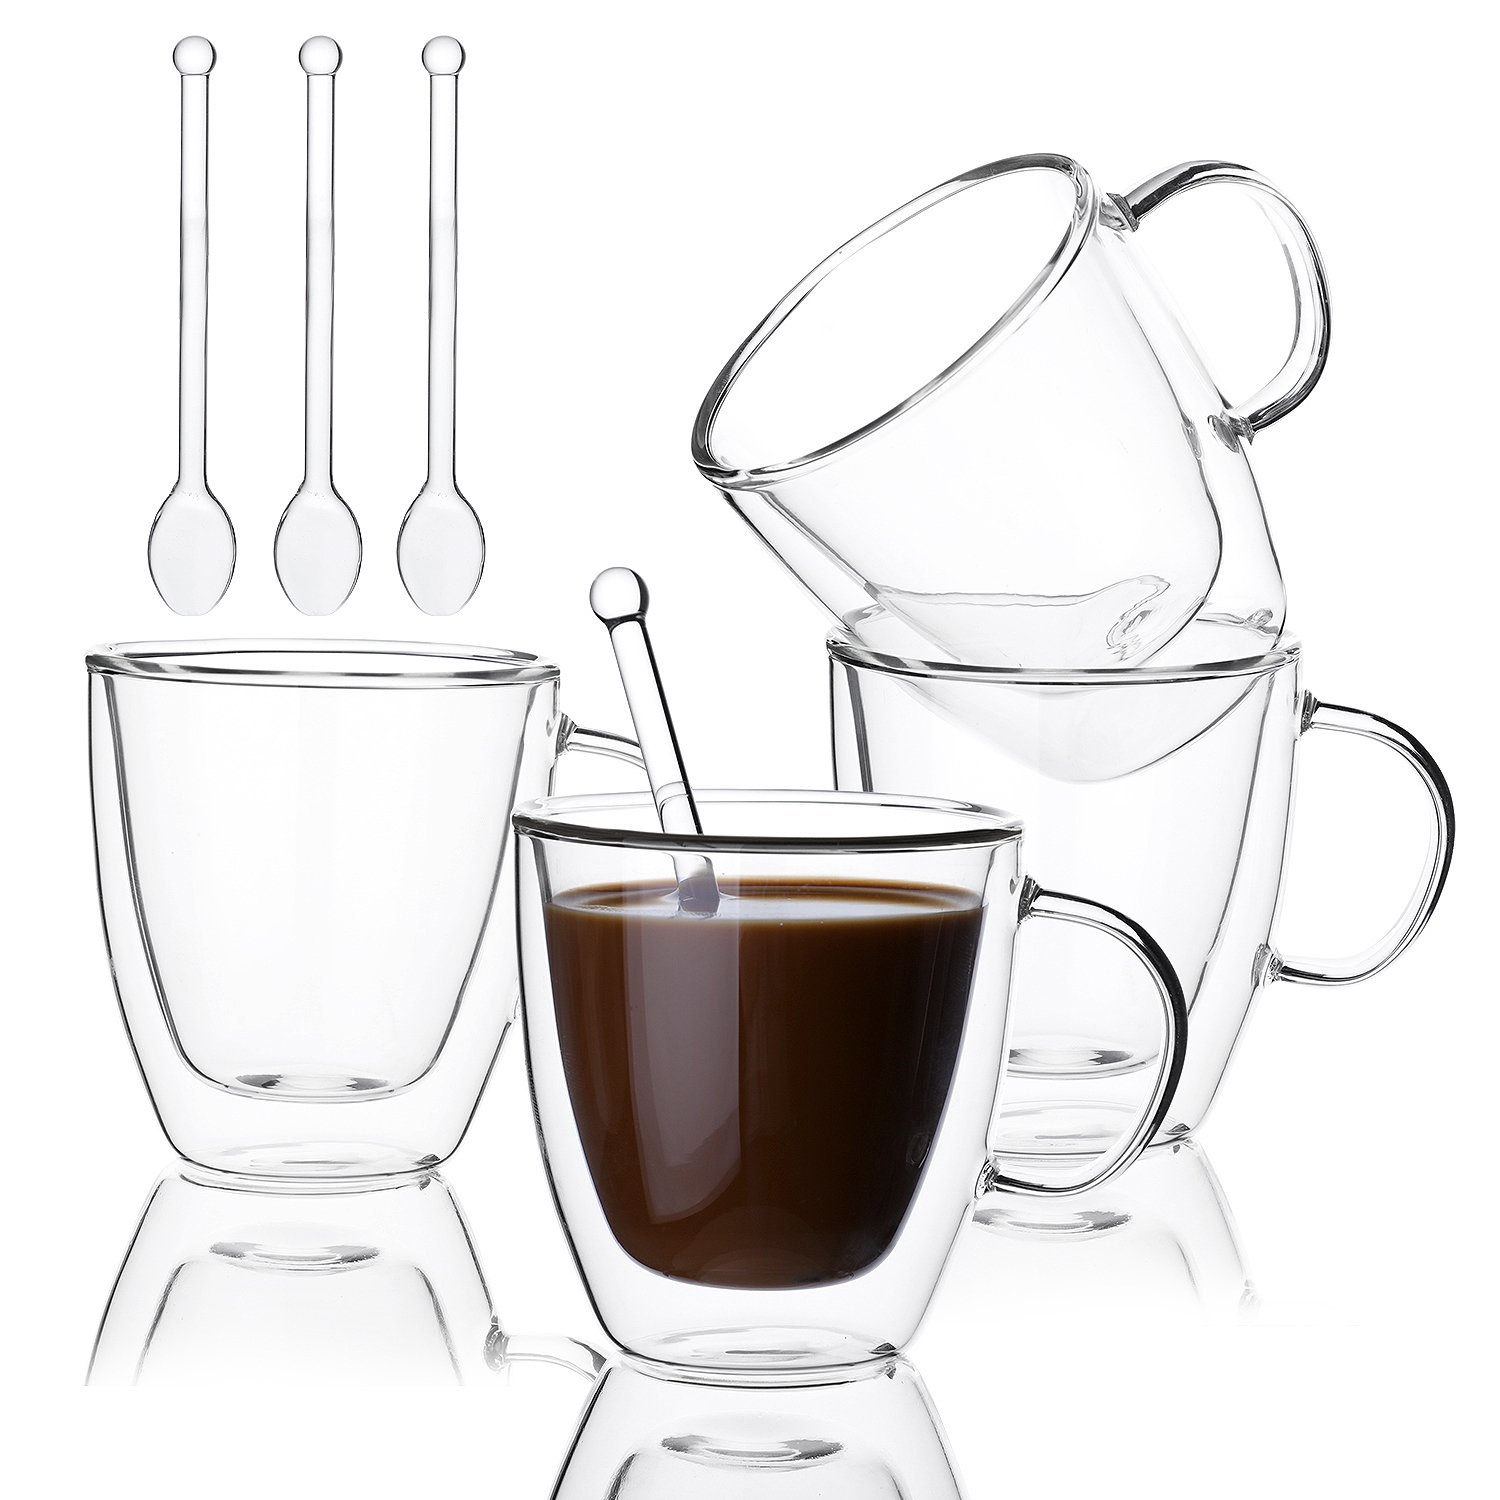 Insulated Coffee Cups Set Double Walled Glasses Coffee Mugs or Tea Cups for Espresso, Latte, Cappuccino - Set of 4 Cups and 4 Spoons, 5.4 Ounce / 160ml - Promotion price